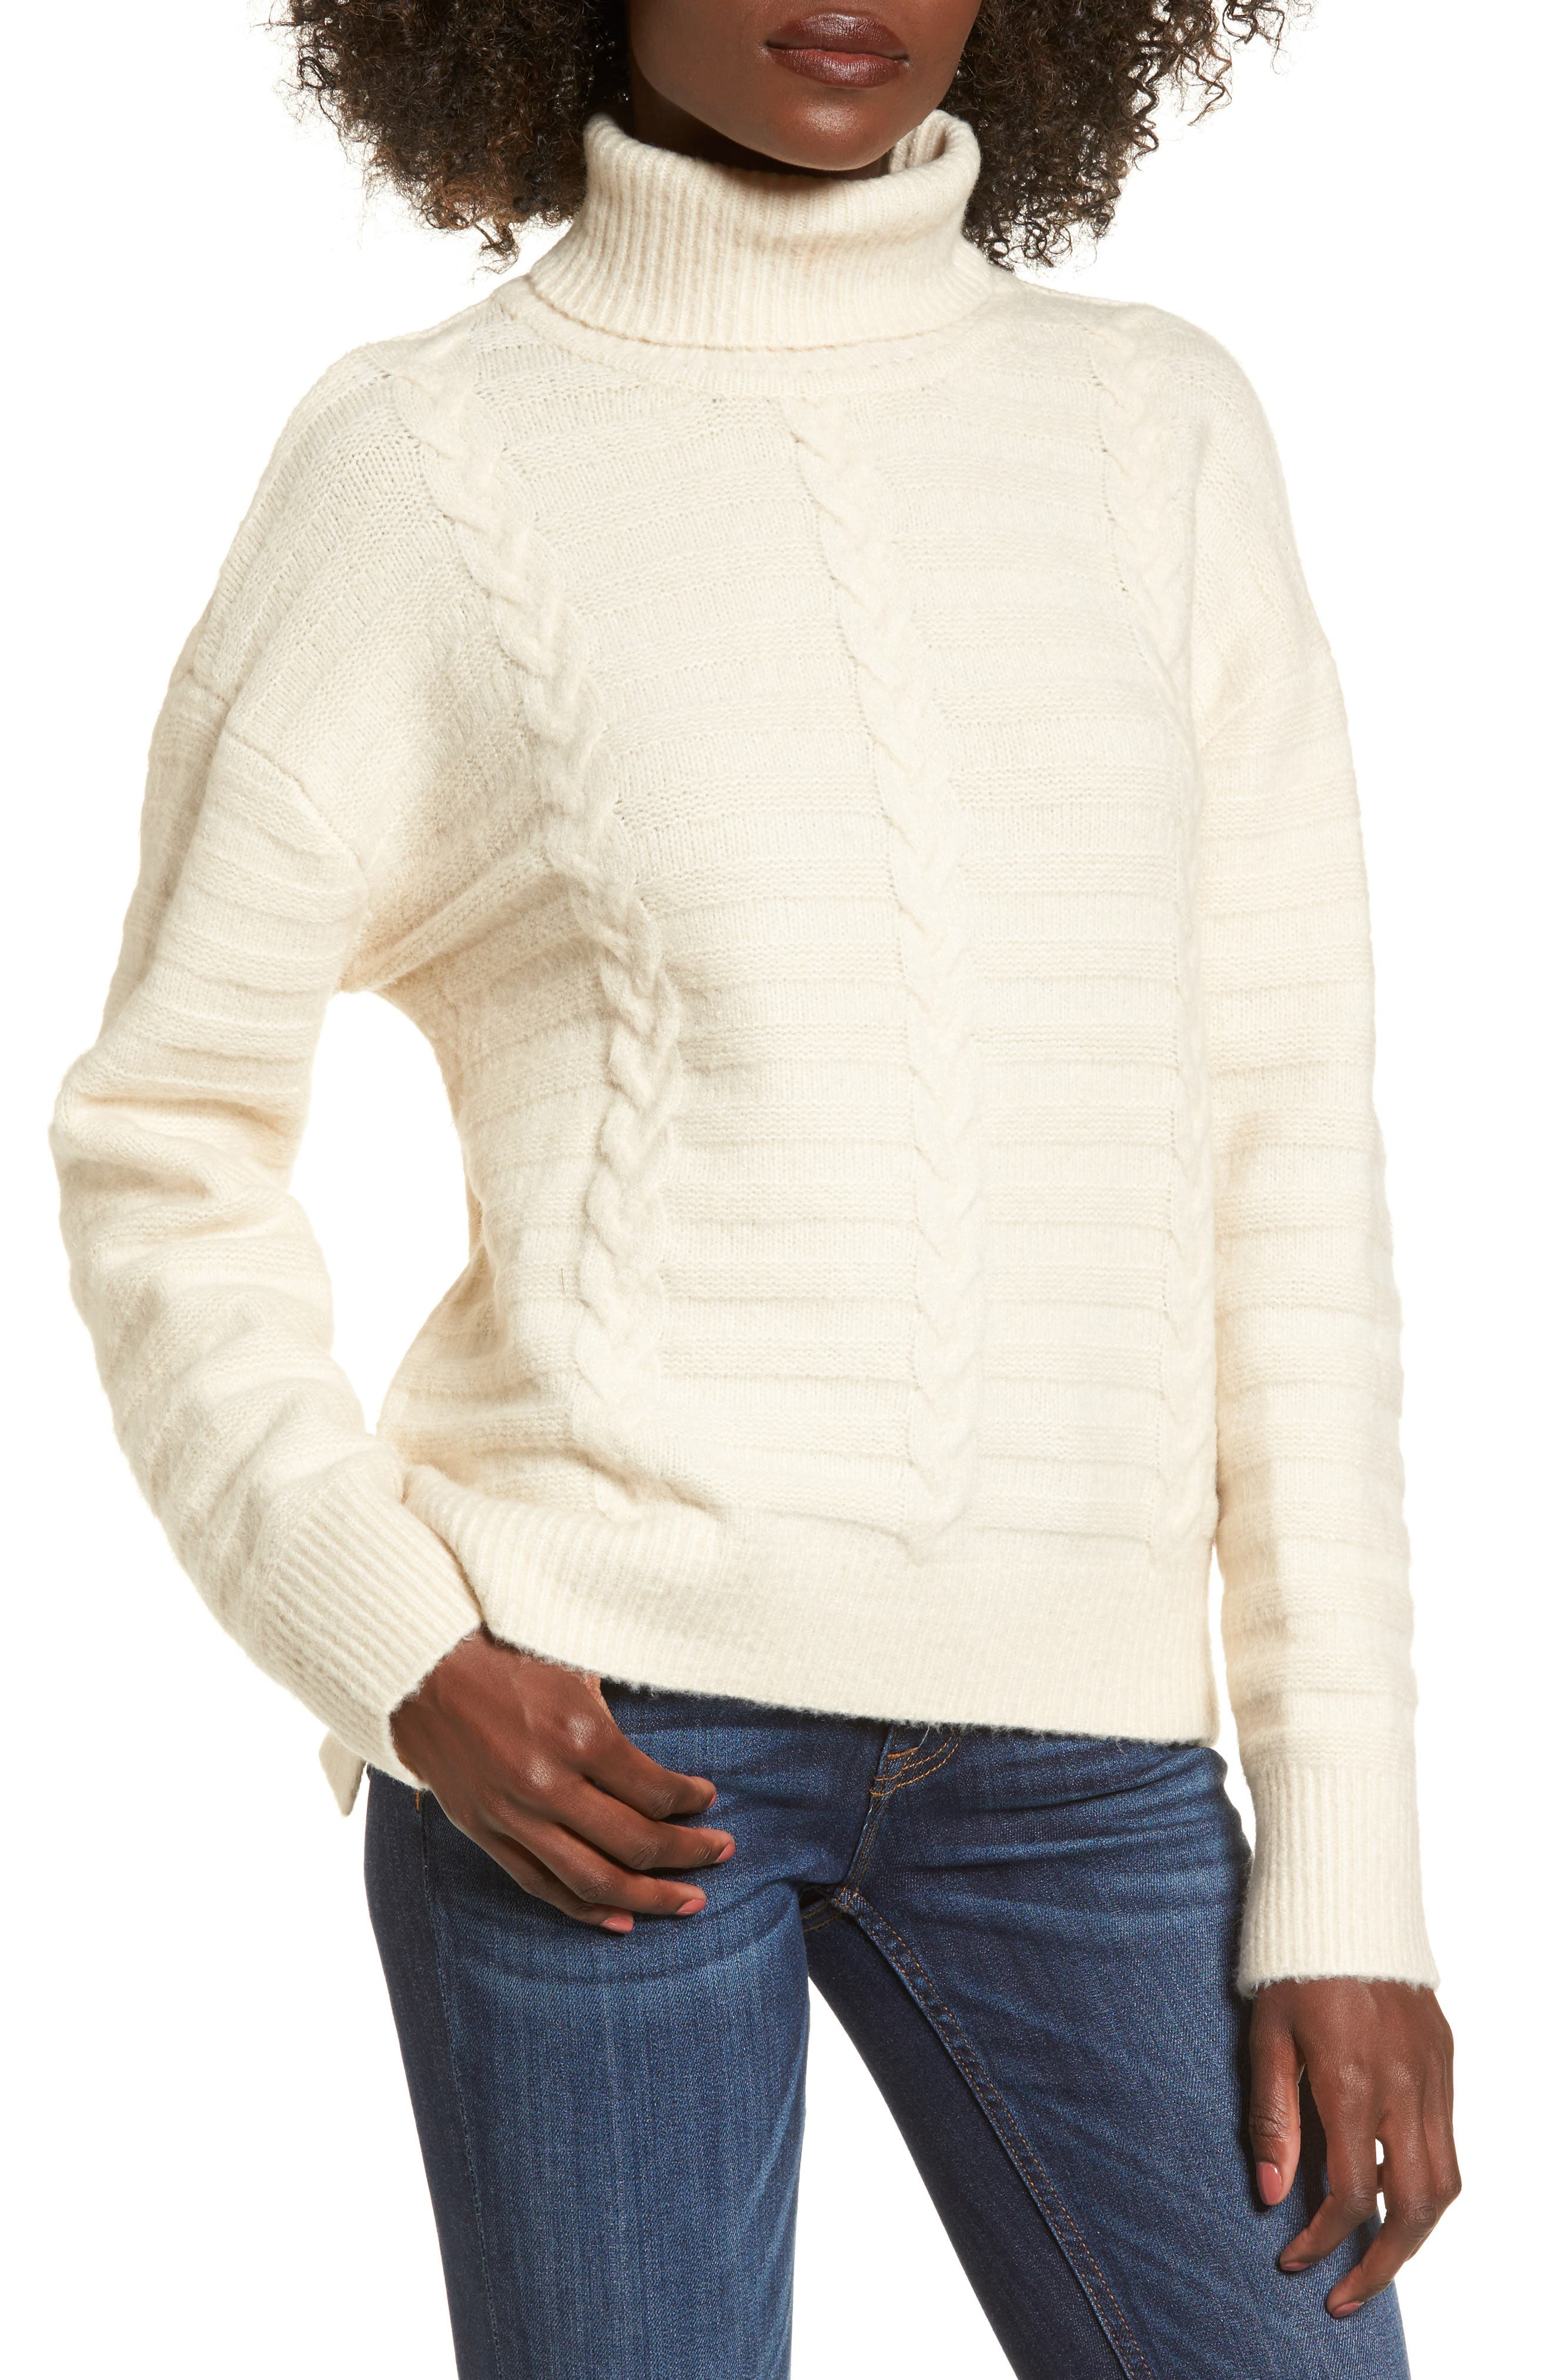 Turtleneck Sweater,                             Main thumbnail 1, color,                             Ivory